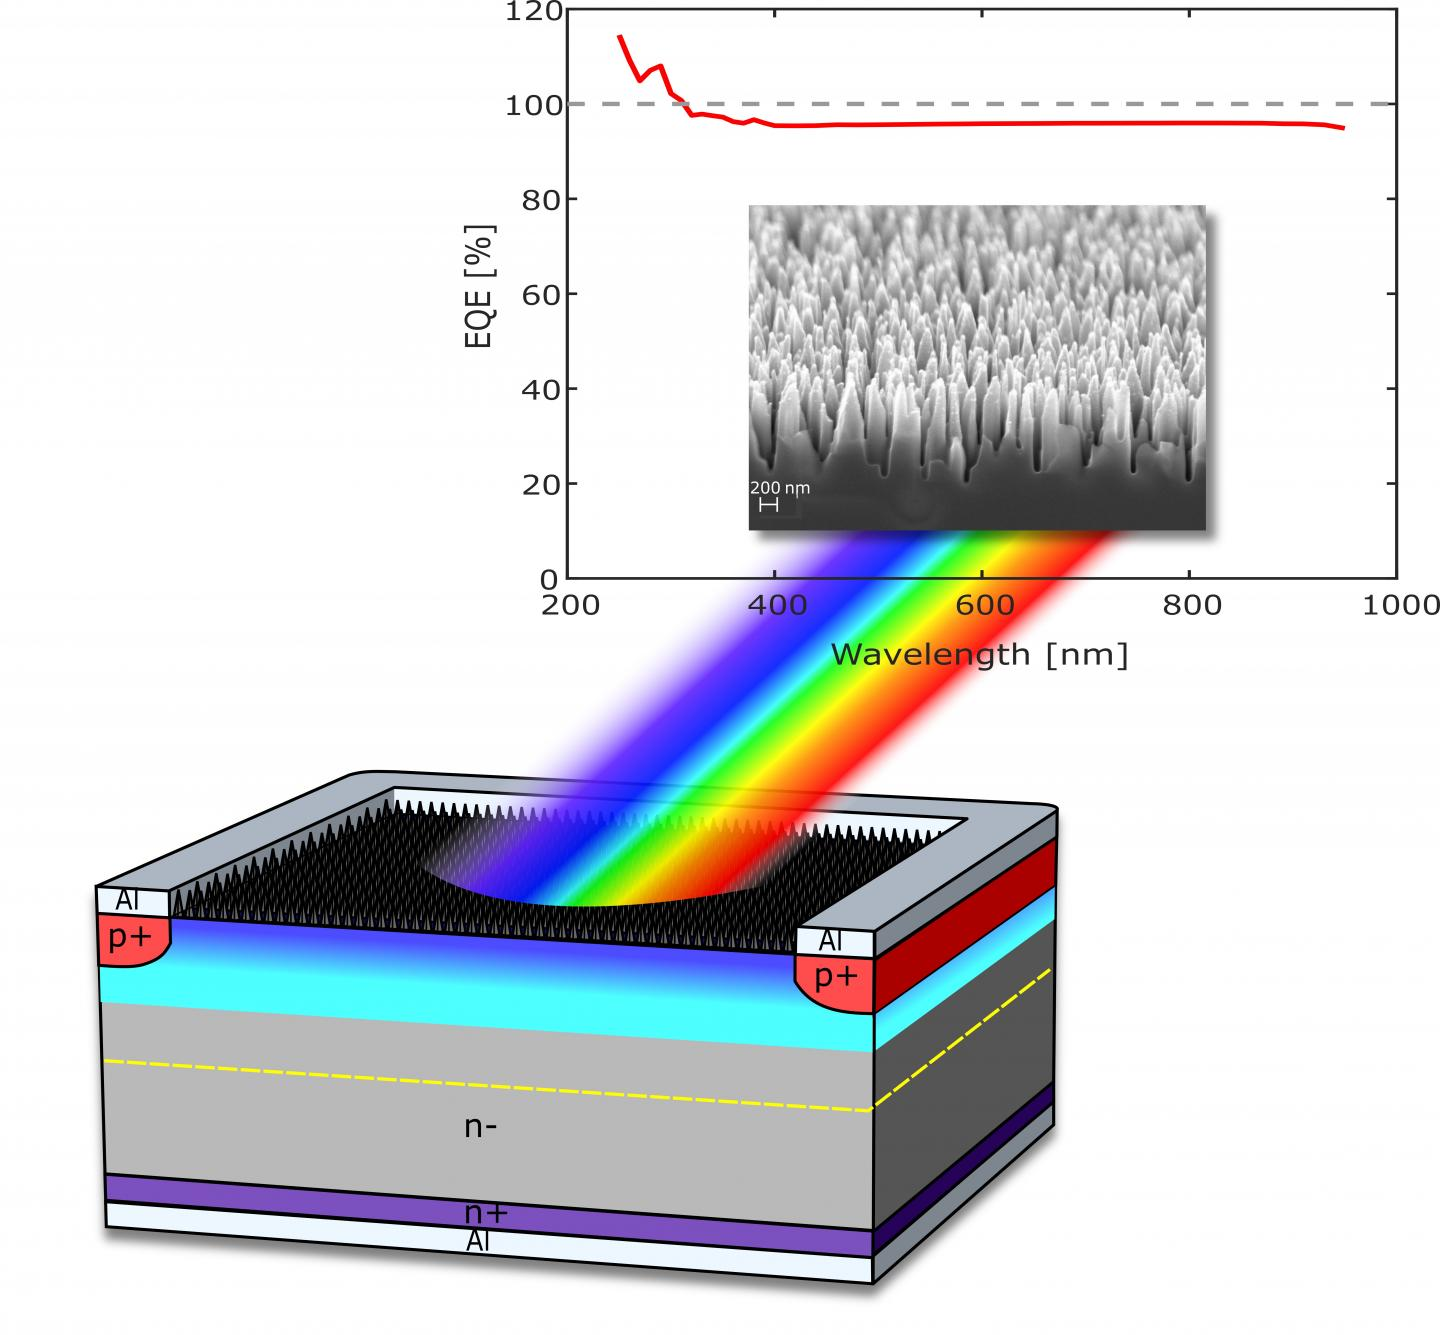 Structure and performance of the novel photodetector